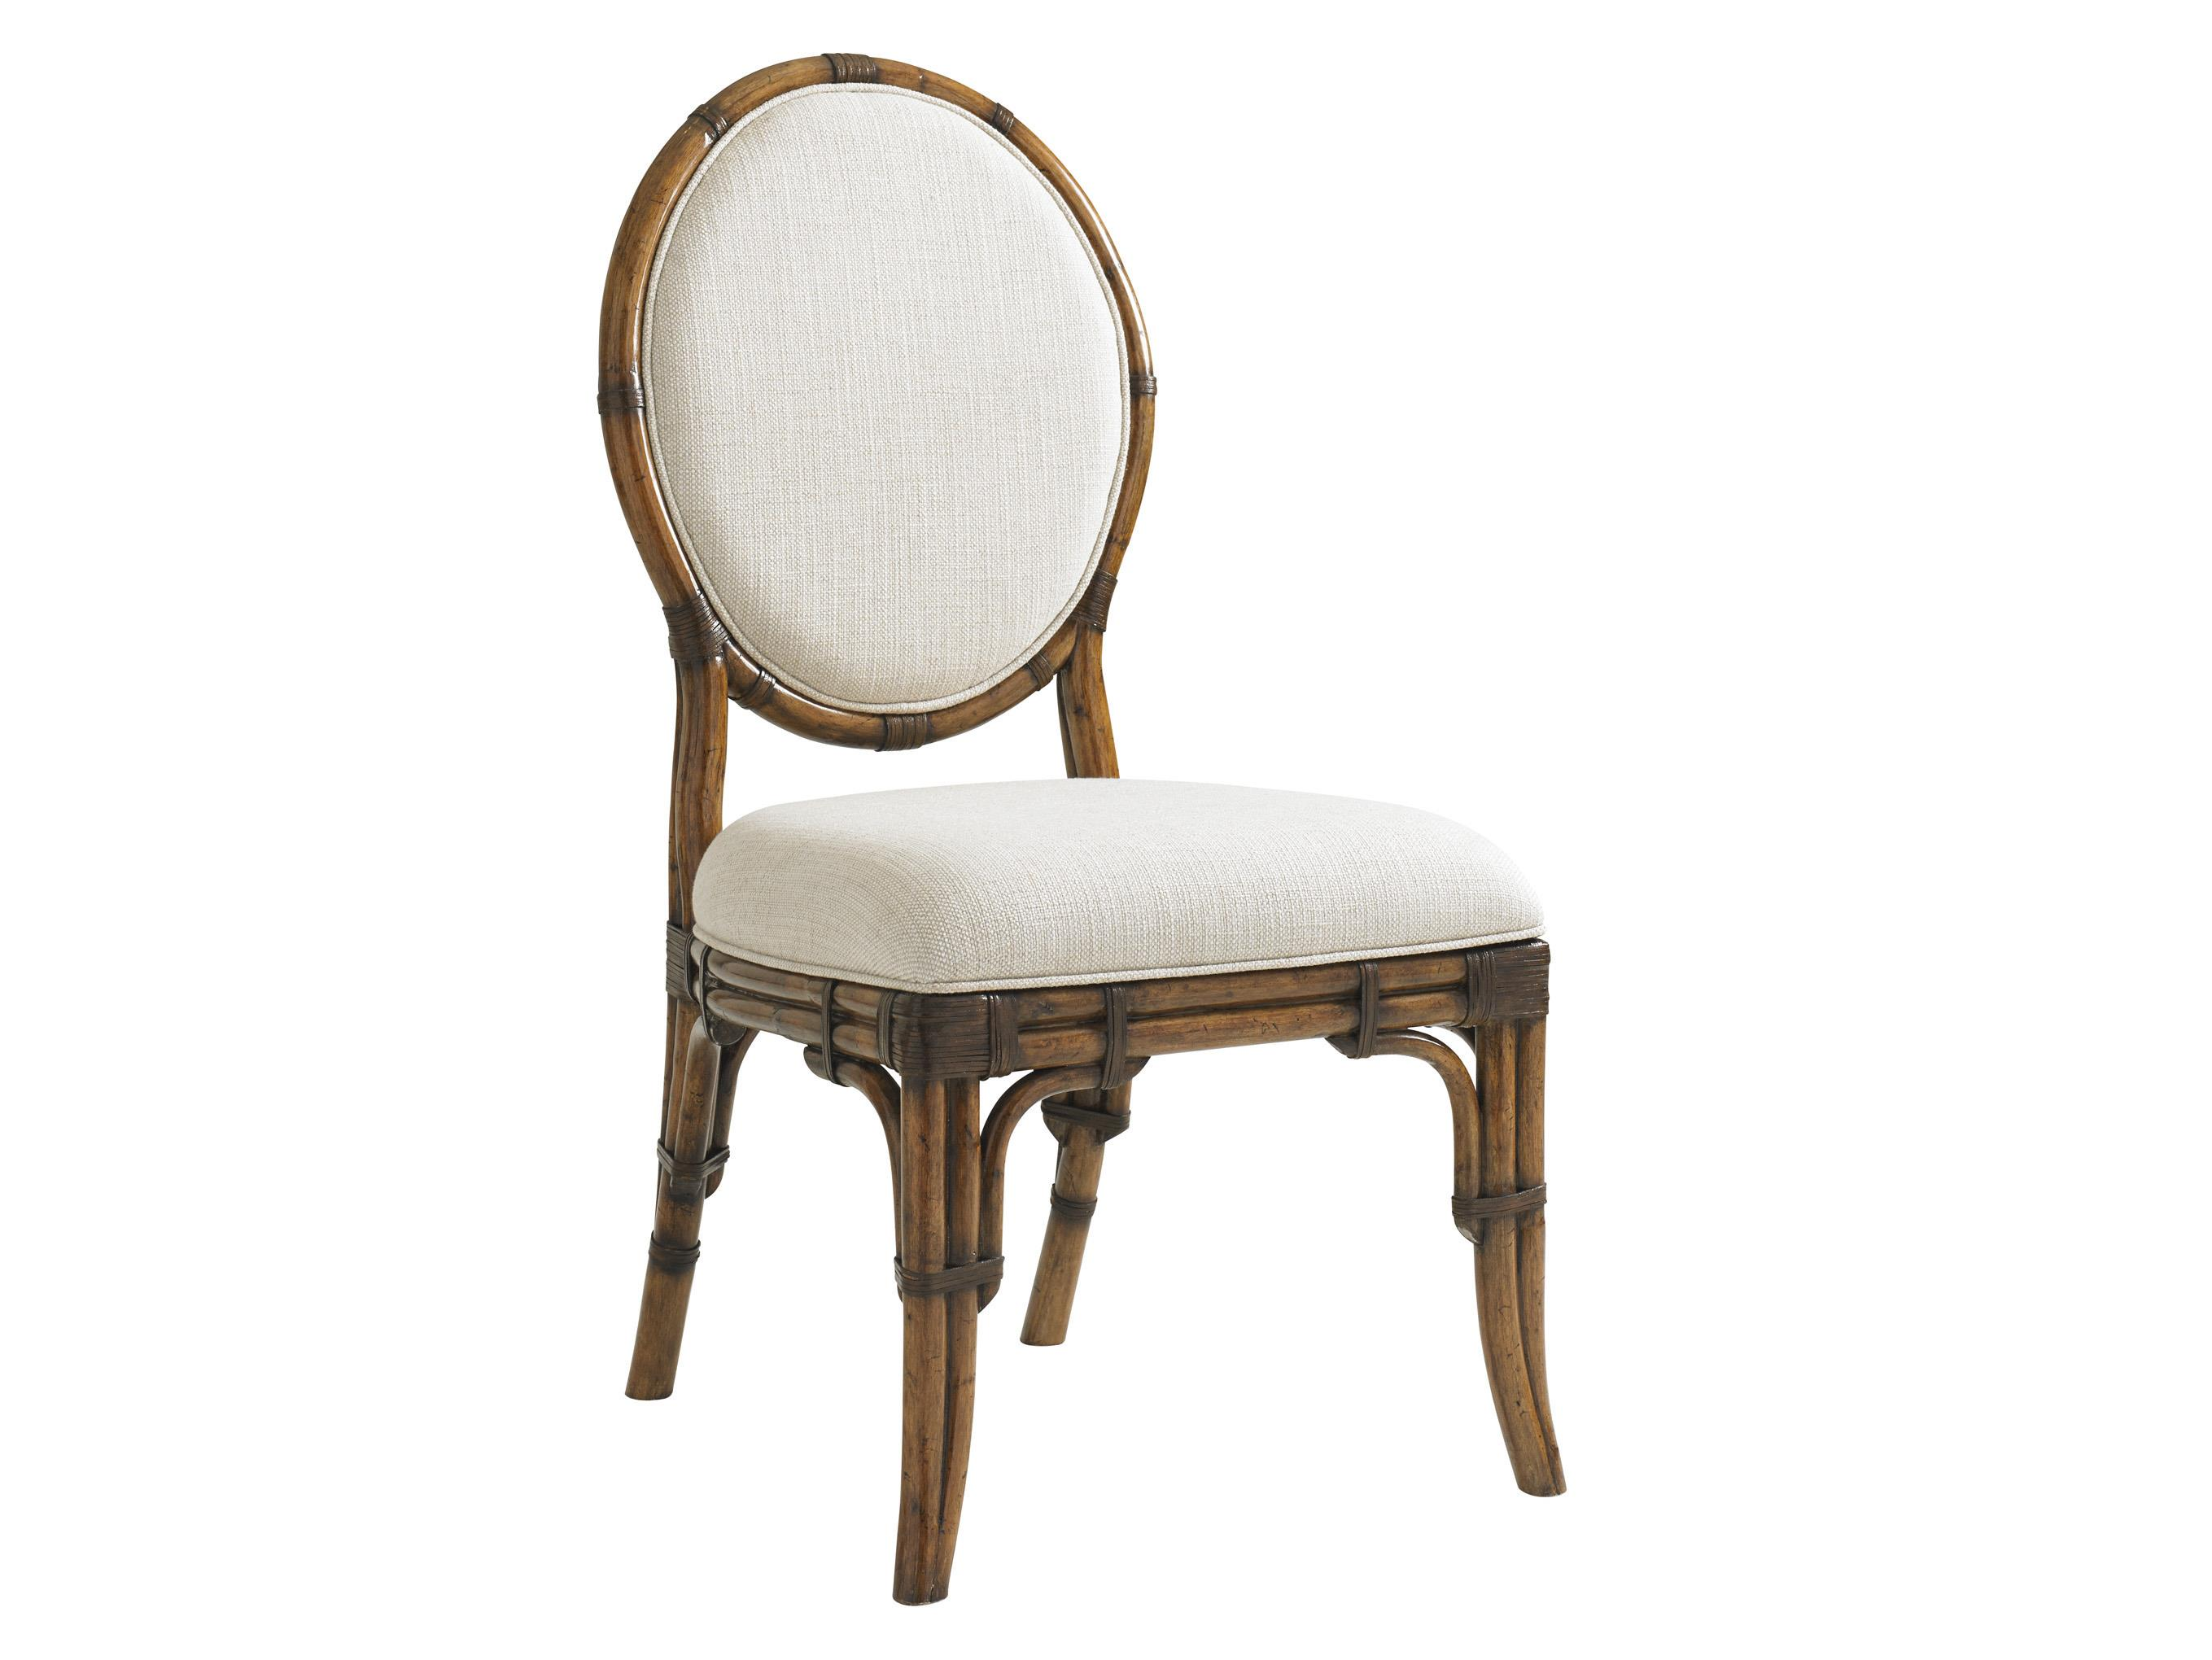 Bali Hai Quickship Gulfstream Oval Back Side Chair by Tommy Bahama Home at HomeWorld Furniture